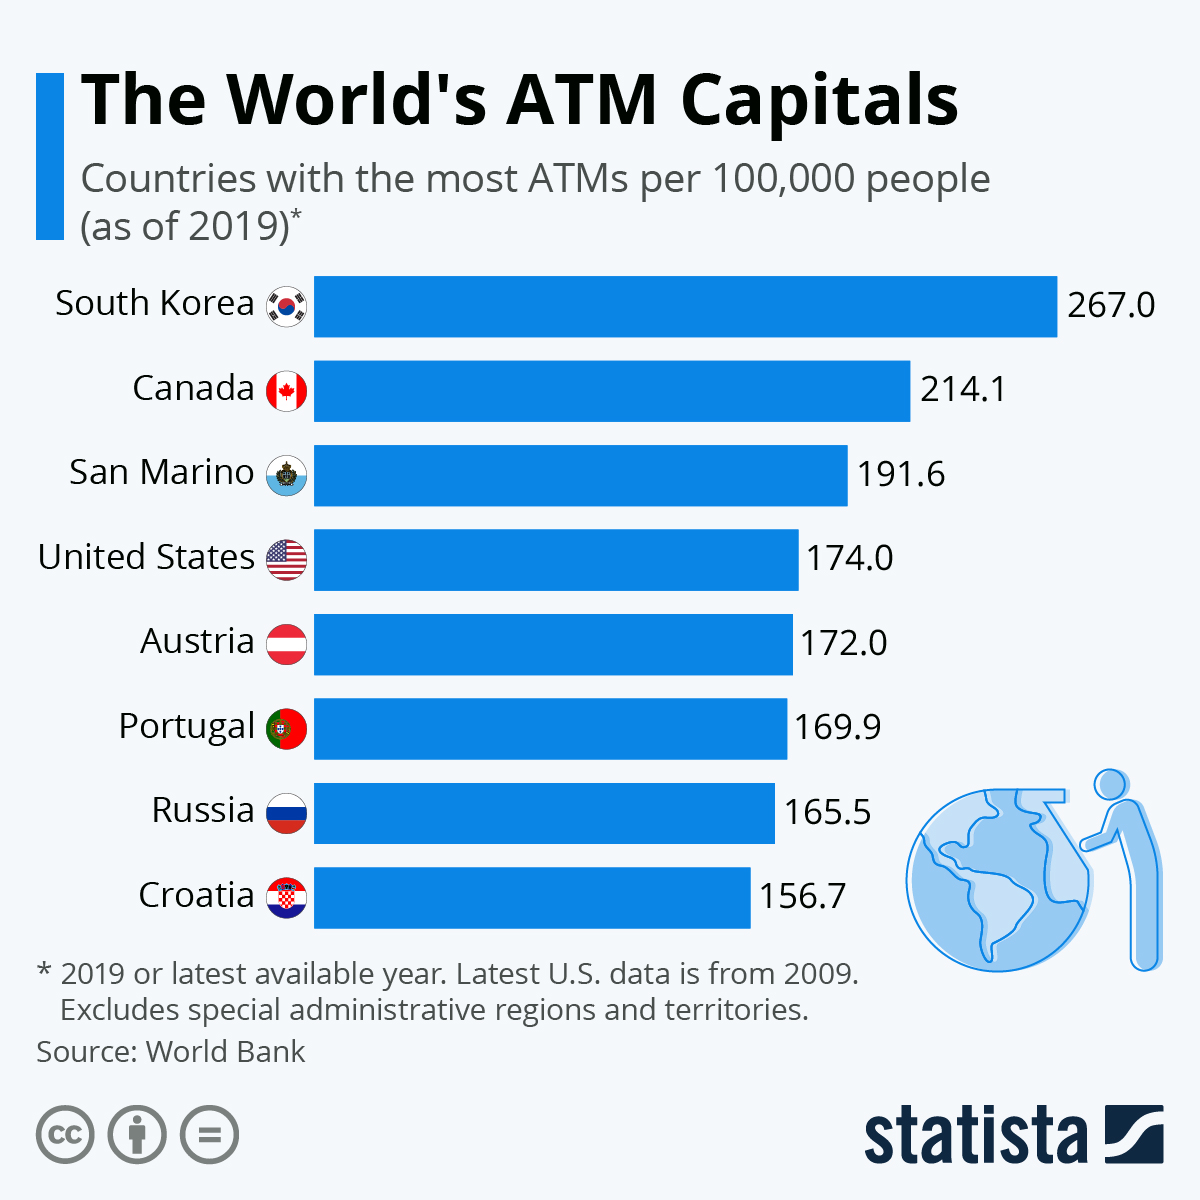 Countries with the most ATMs